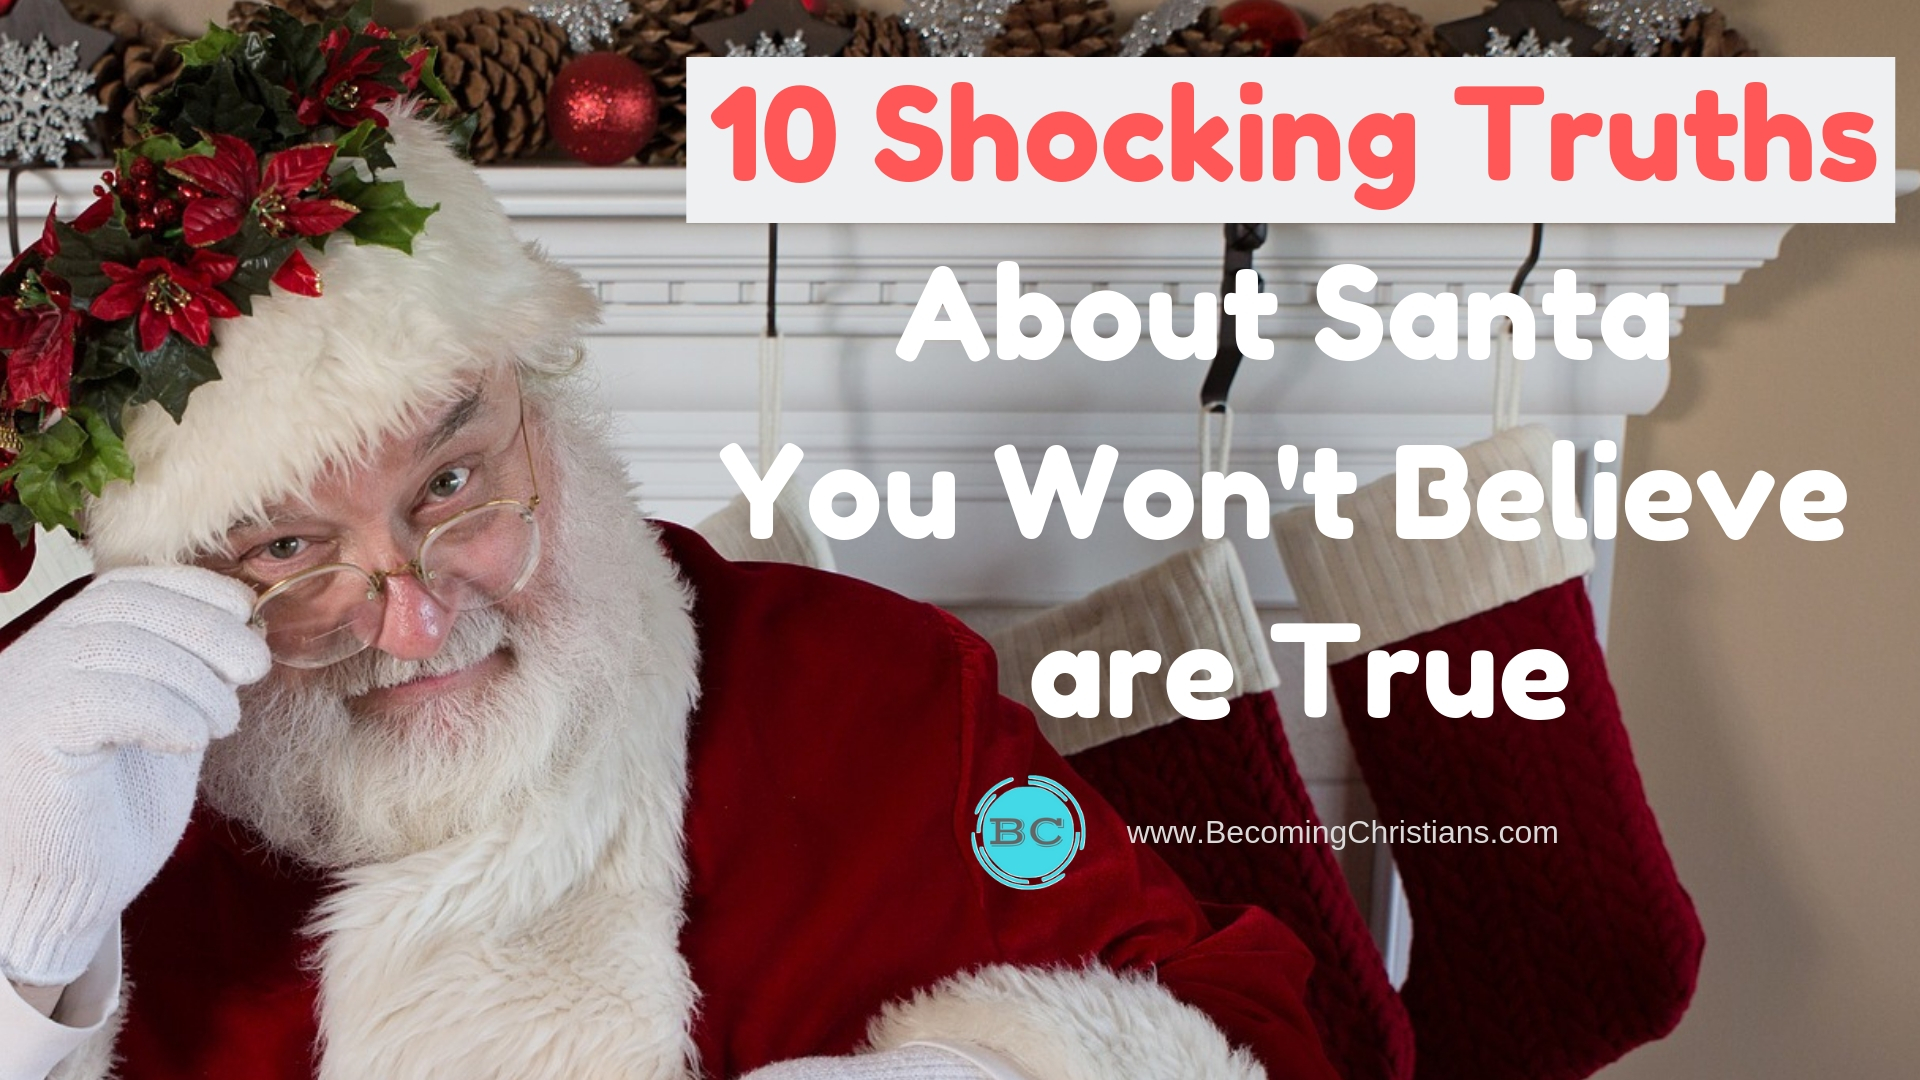 10 shocking truths about Santa You Won't Believe are True.jpg